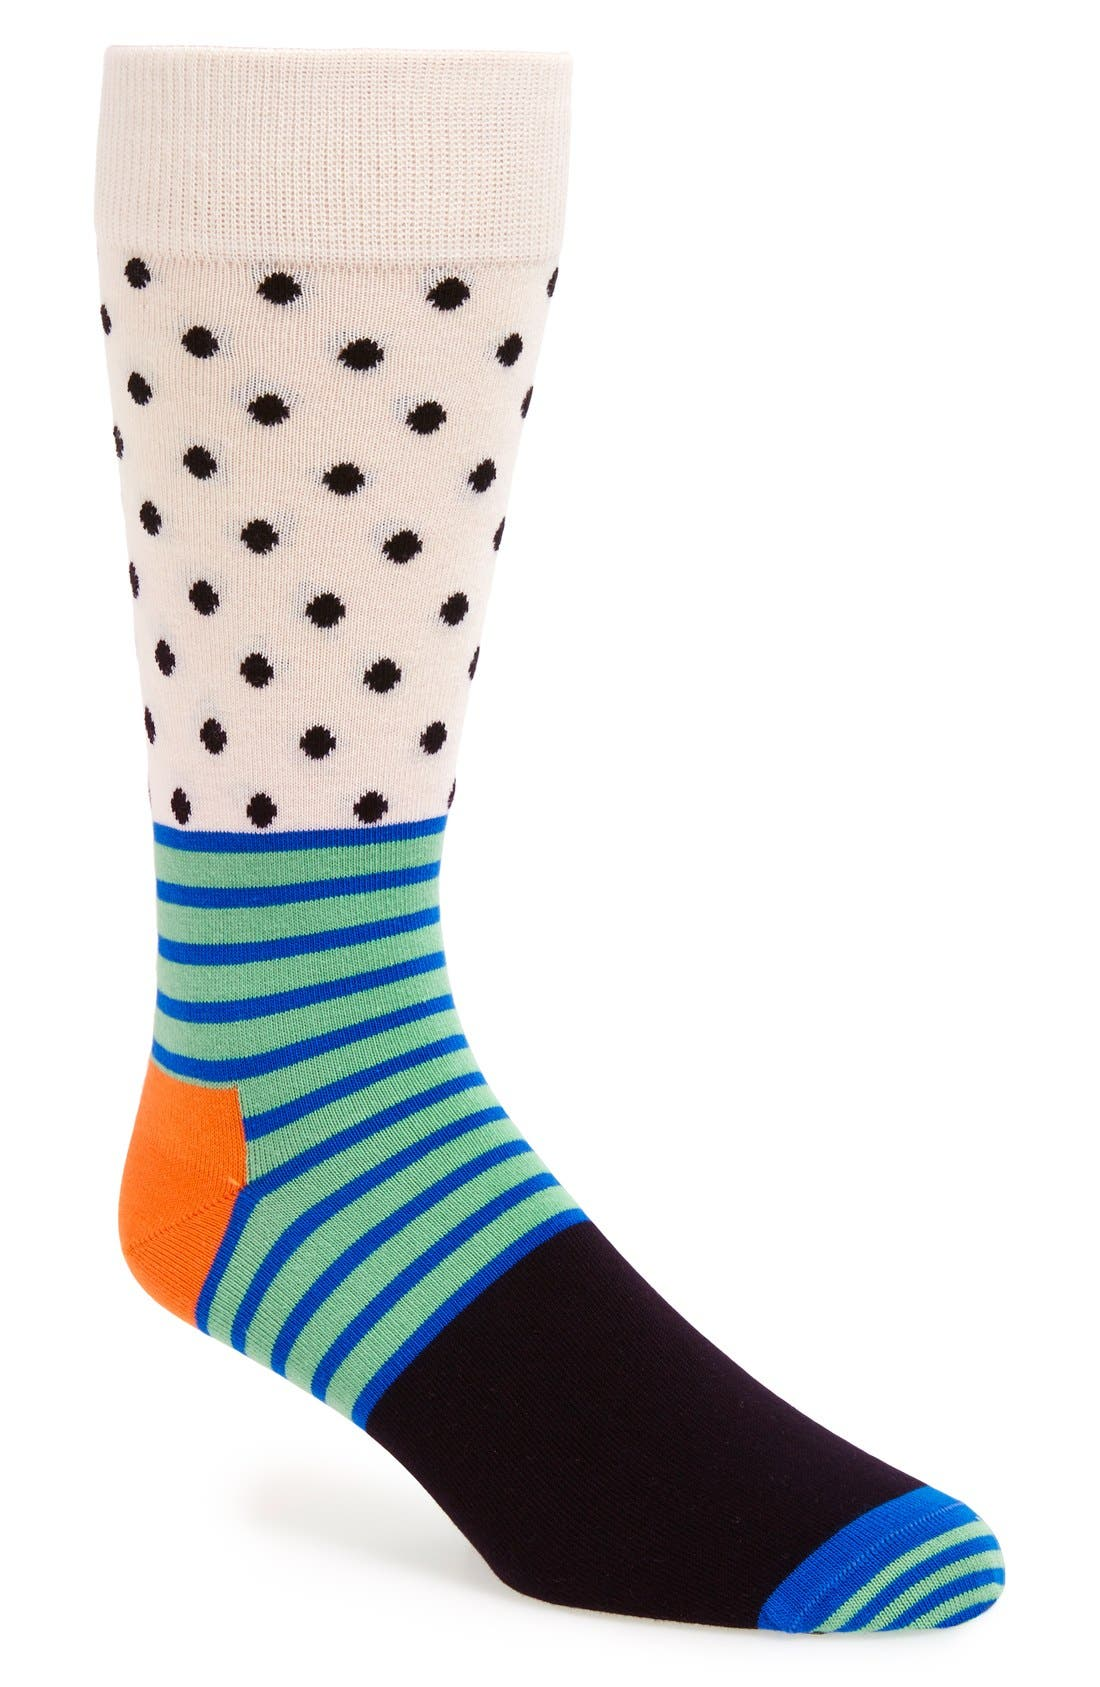 Stripe & Dot Socks,                             Main thumbnail 1, color,                             007